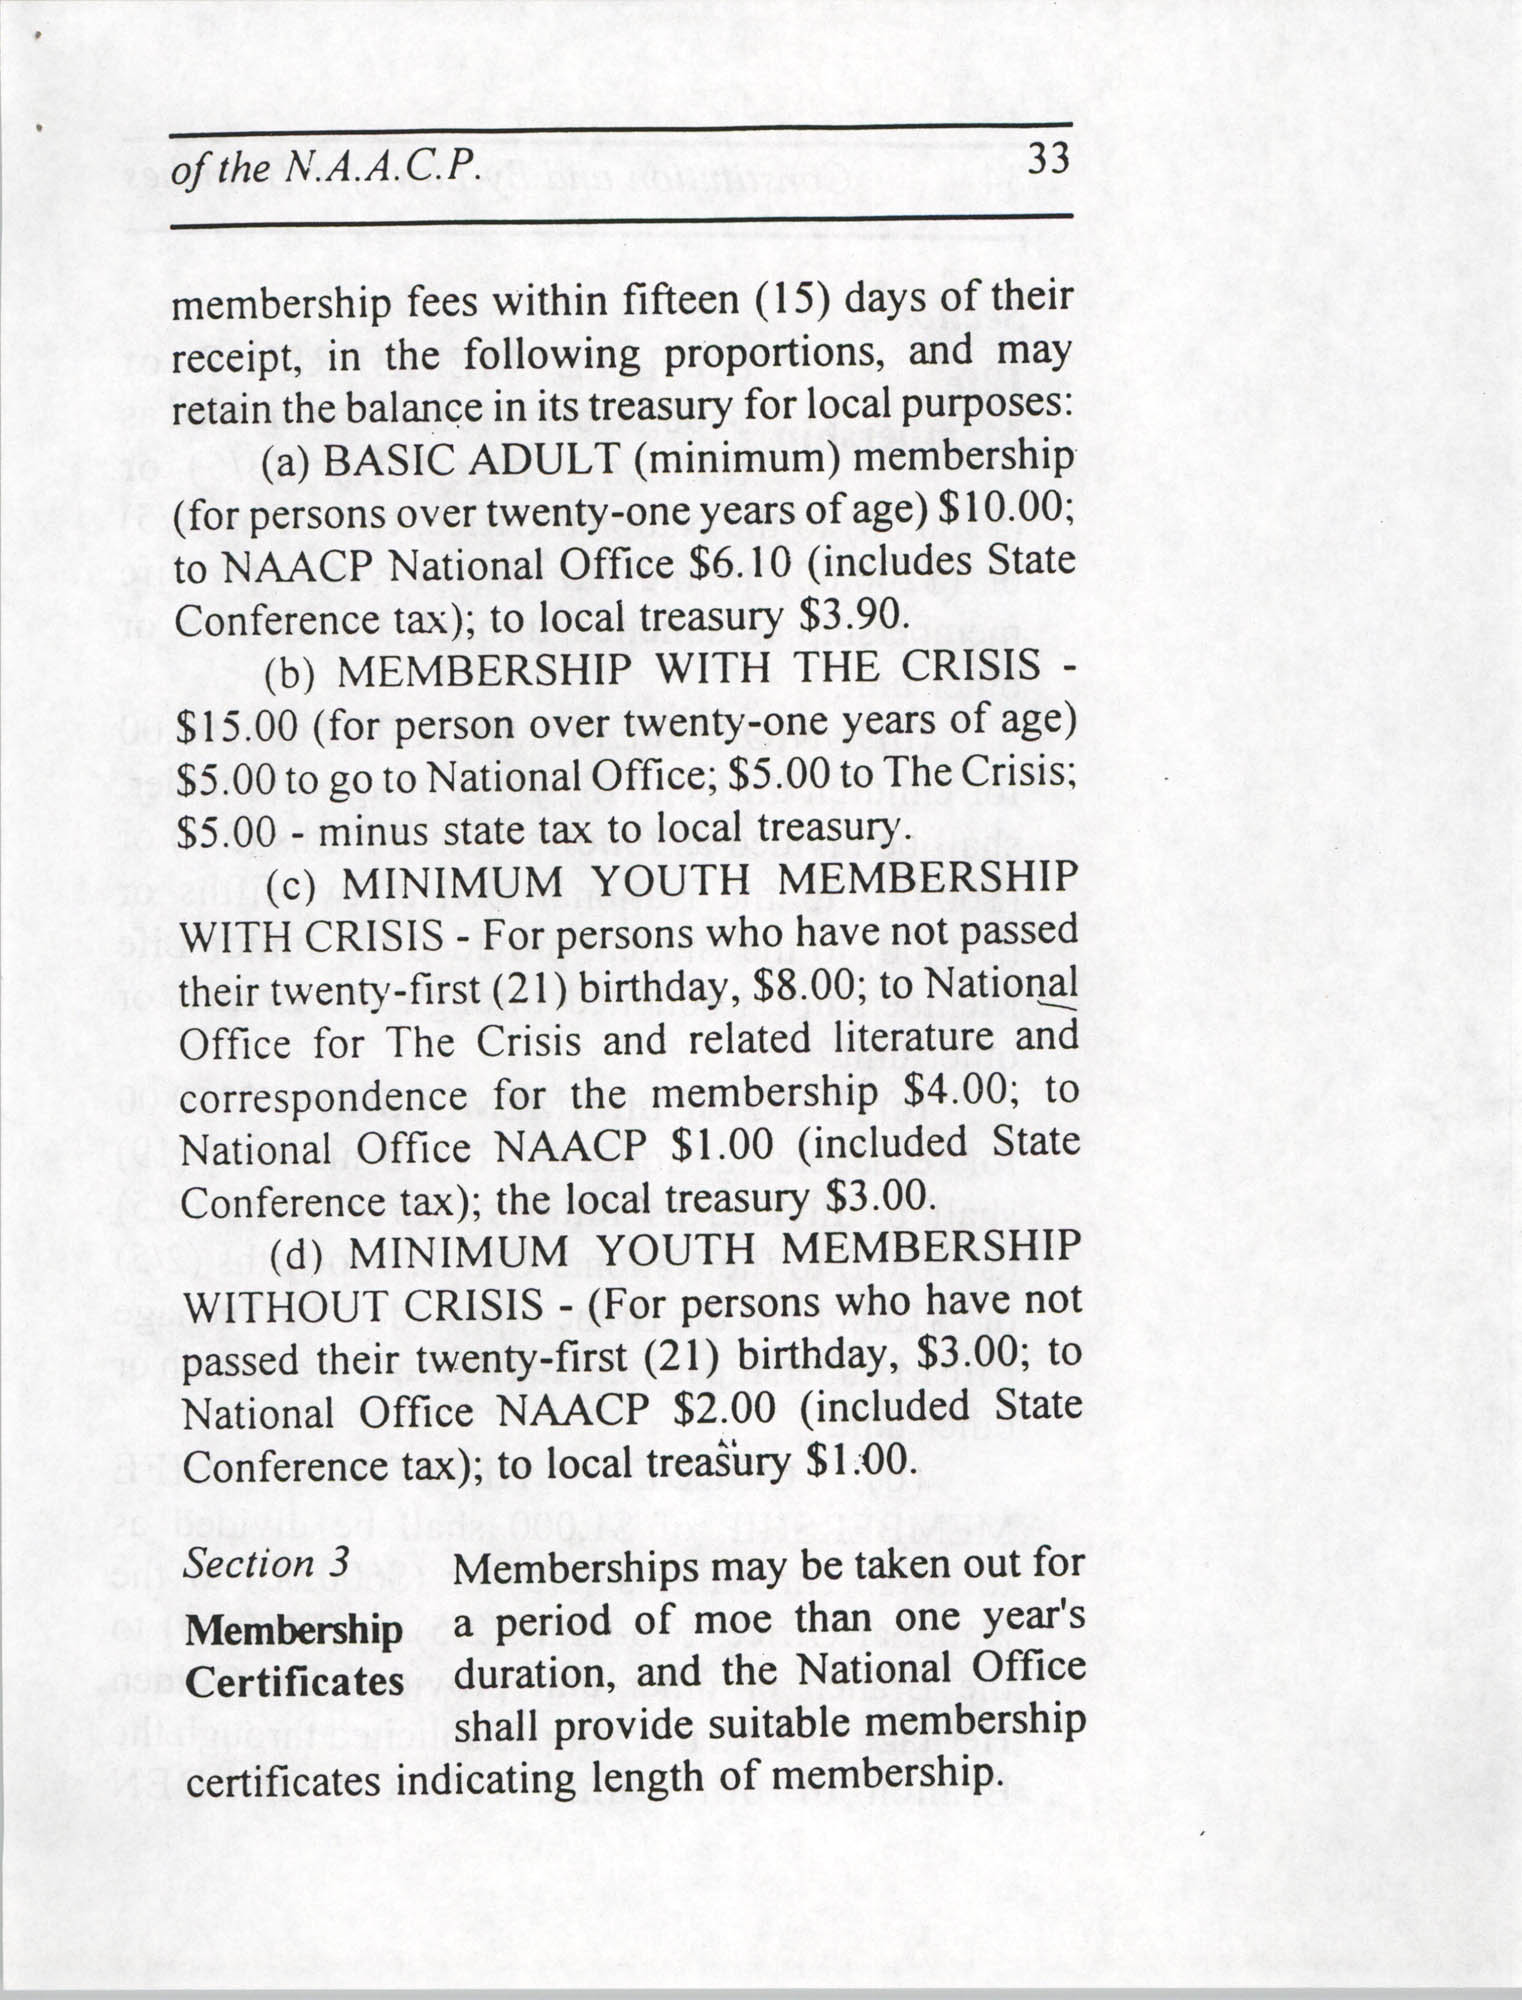 Constitution and By-Laws for Branches of the NAACP, July 1994, Page 33